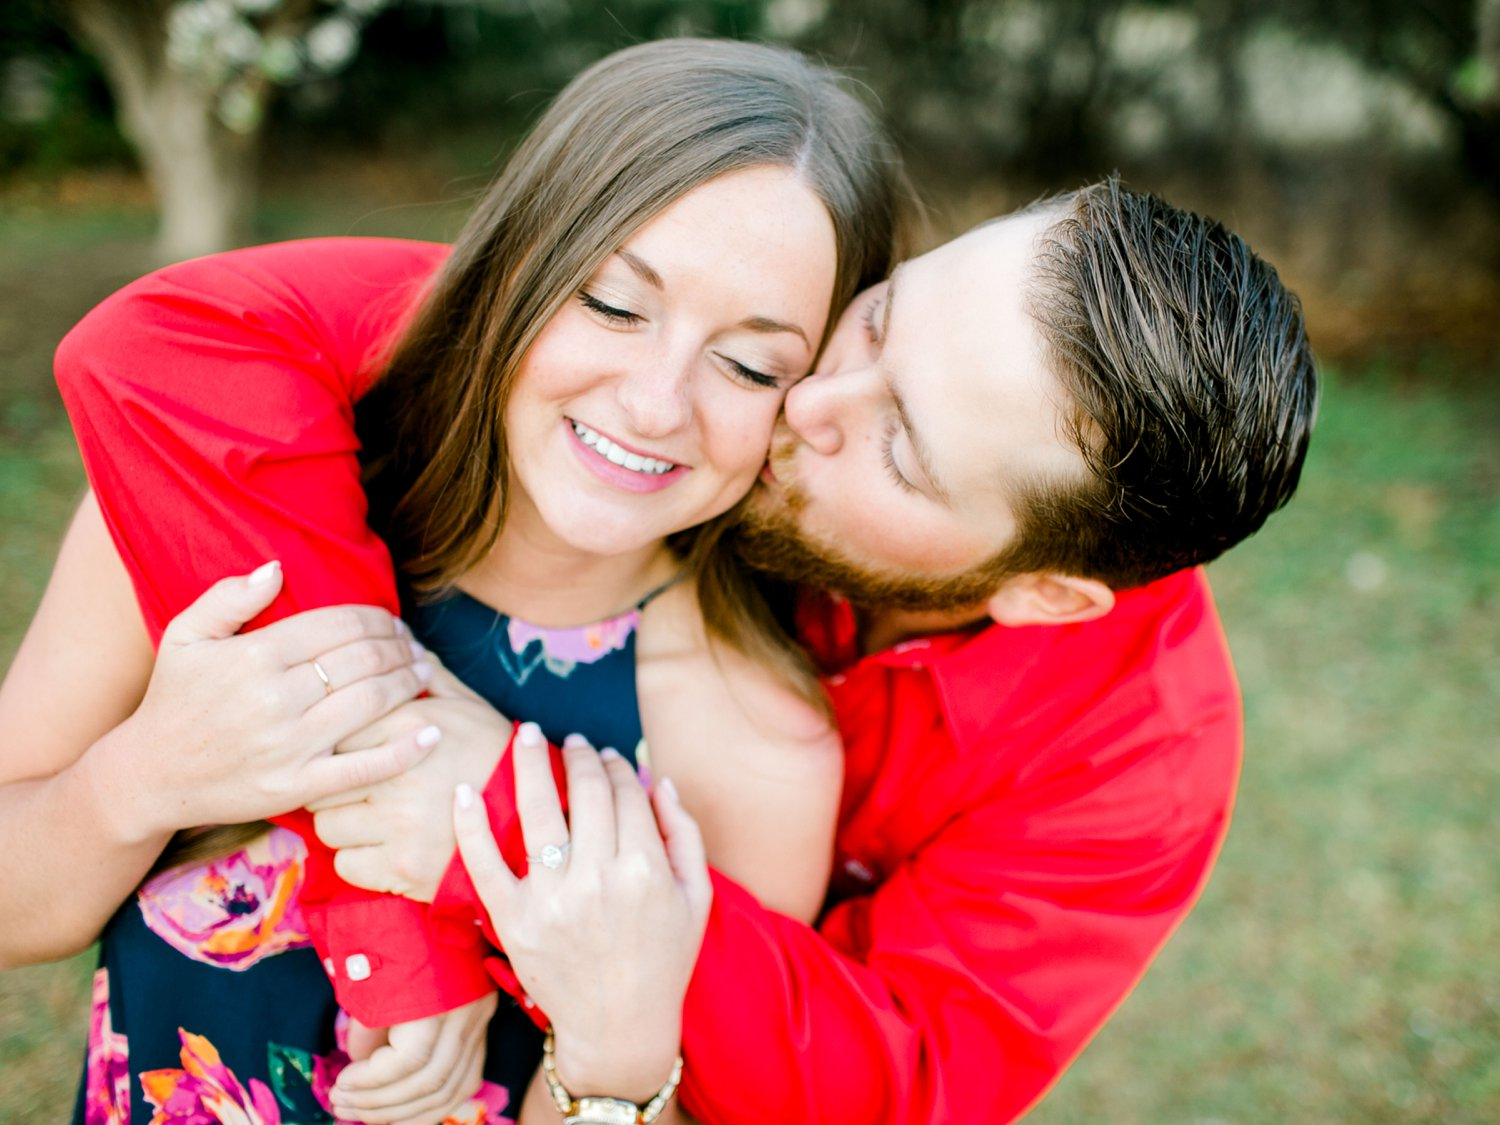 bailey-and-scotland-church-engagement-lubbock-photographer0014.jpg